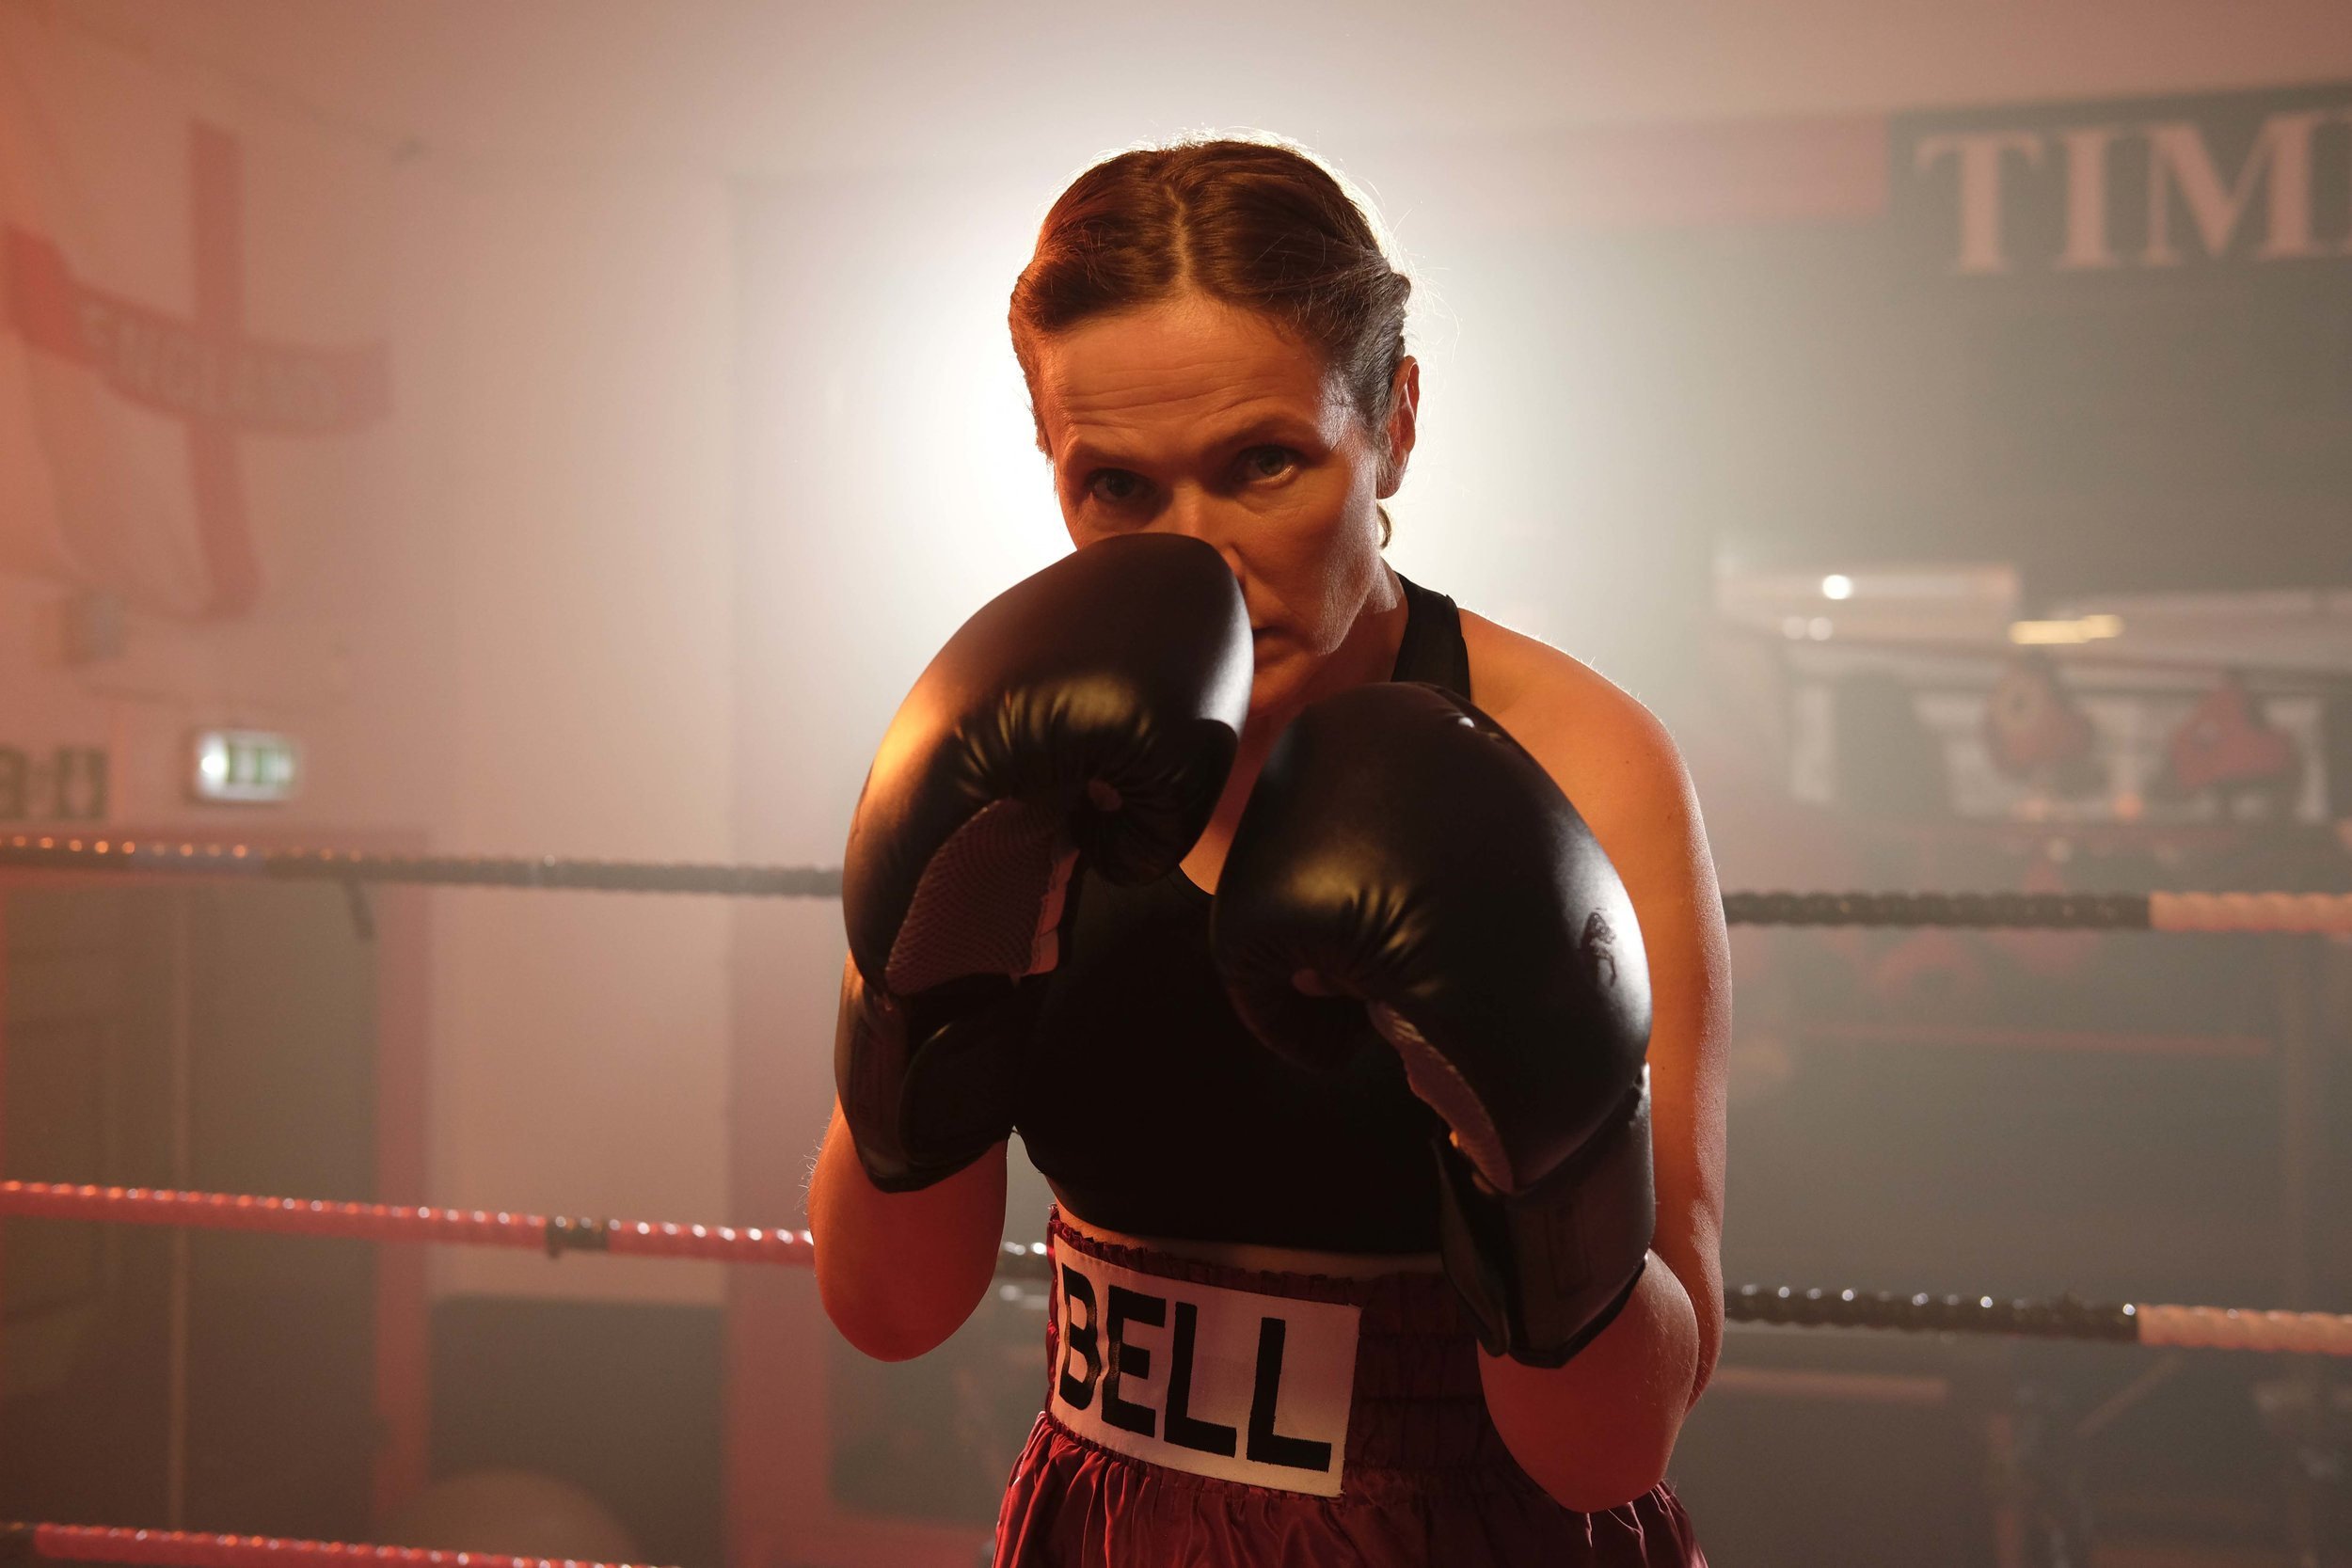 Jessica Hynes in The Fight, Photo: Gareth Gatrell